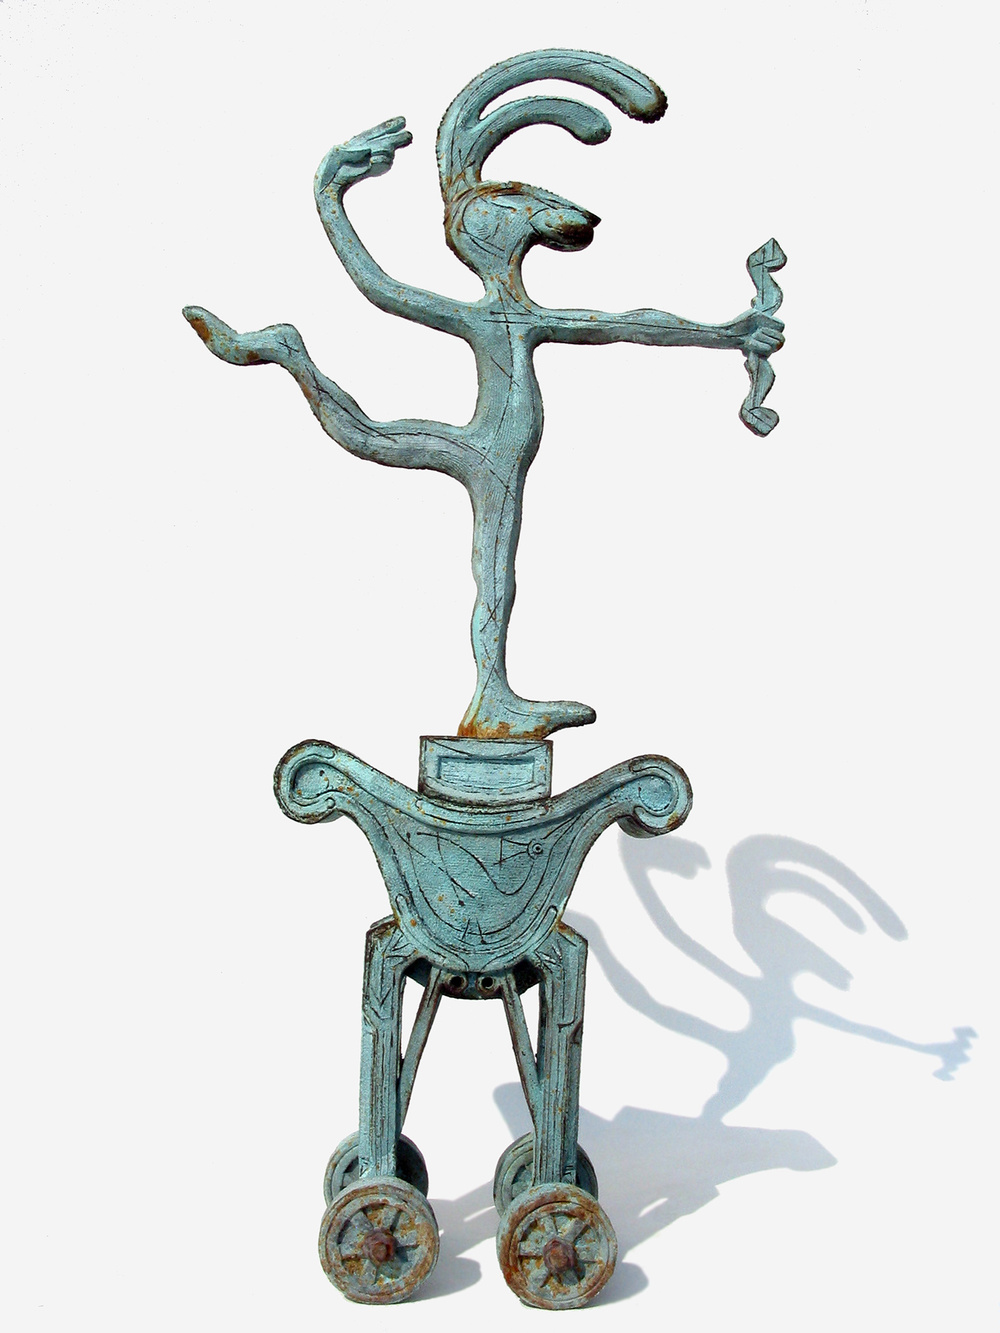 "Panjandrum l   ©   76 cm high x 39 cm wide  Unique  Two cartoon-like weather-vane hares ""Pomp"" and ""Circumstance"" take the guise of Eros the Archer on royal chariots.  This is no transportation fit for kings, but in the first image, a facsimile of a simple, yet ornate, Cretan water cart and in the second, a glorified perambulator.  Pomp and Circumstance are being pierced though the heart."